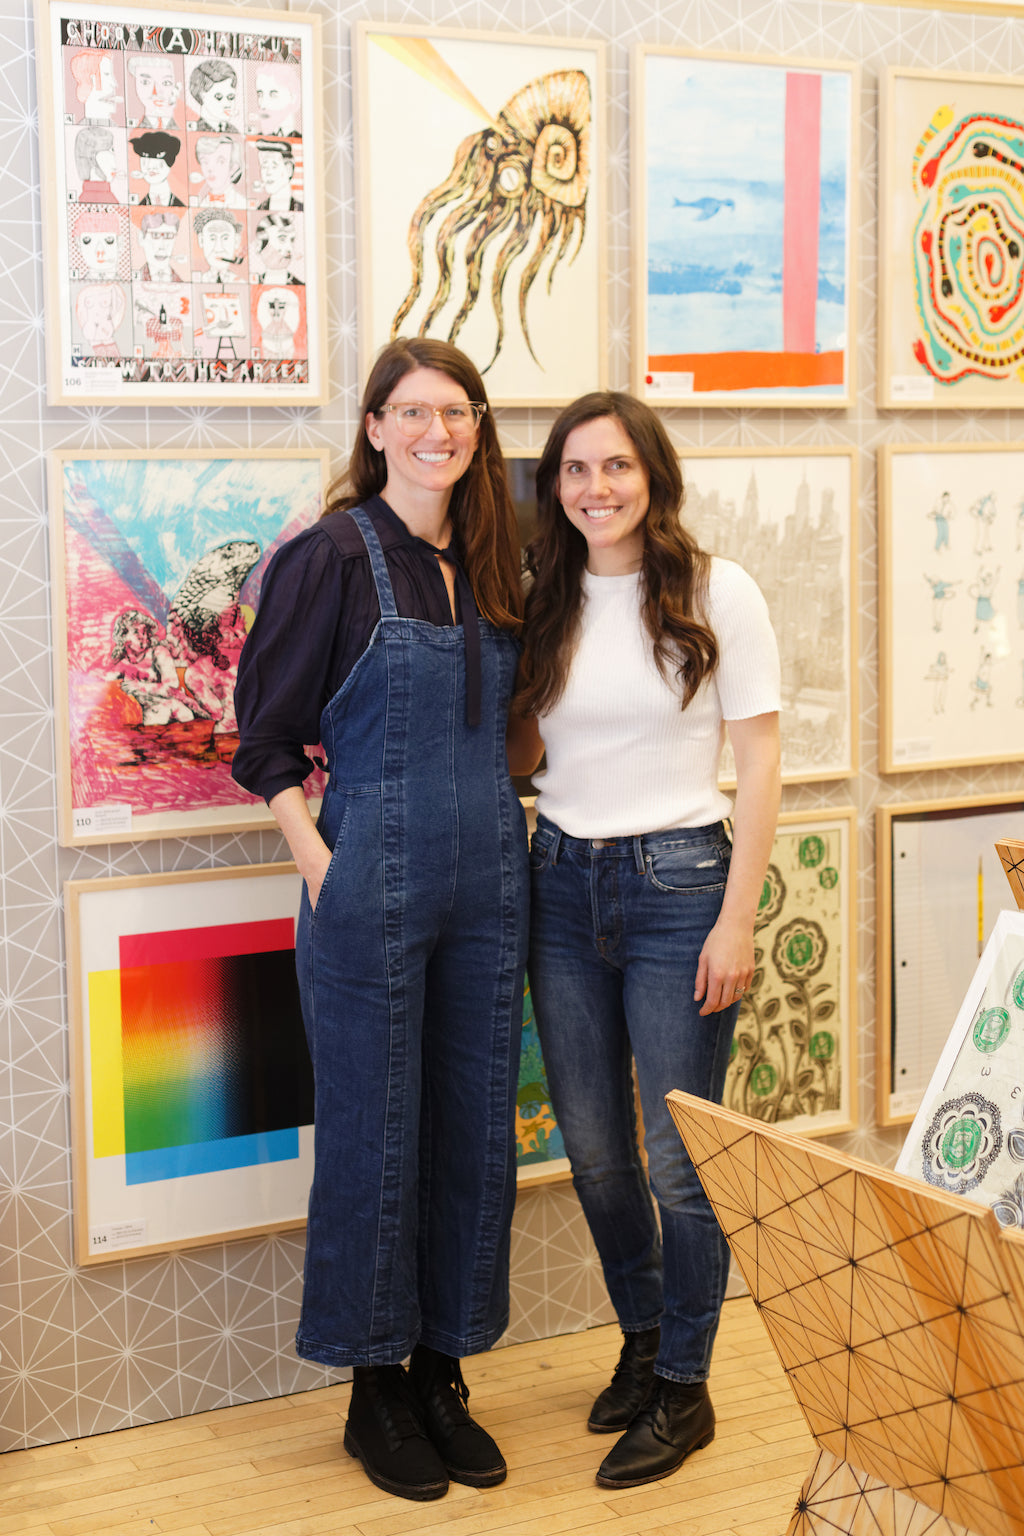 Dara Segal and liz Libré simply framed